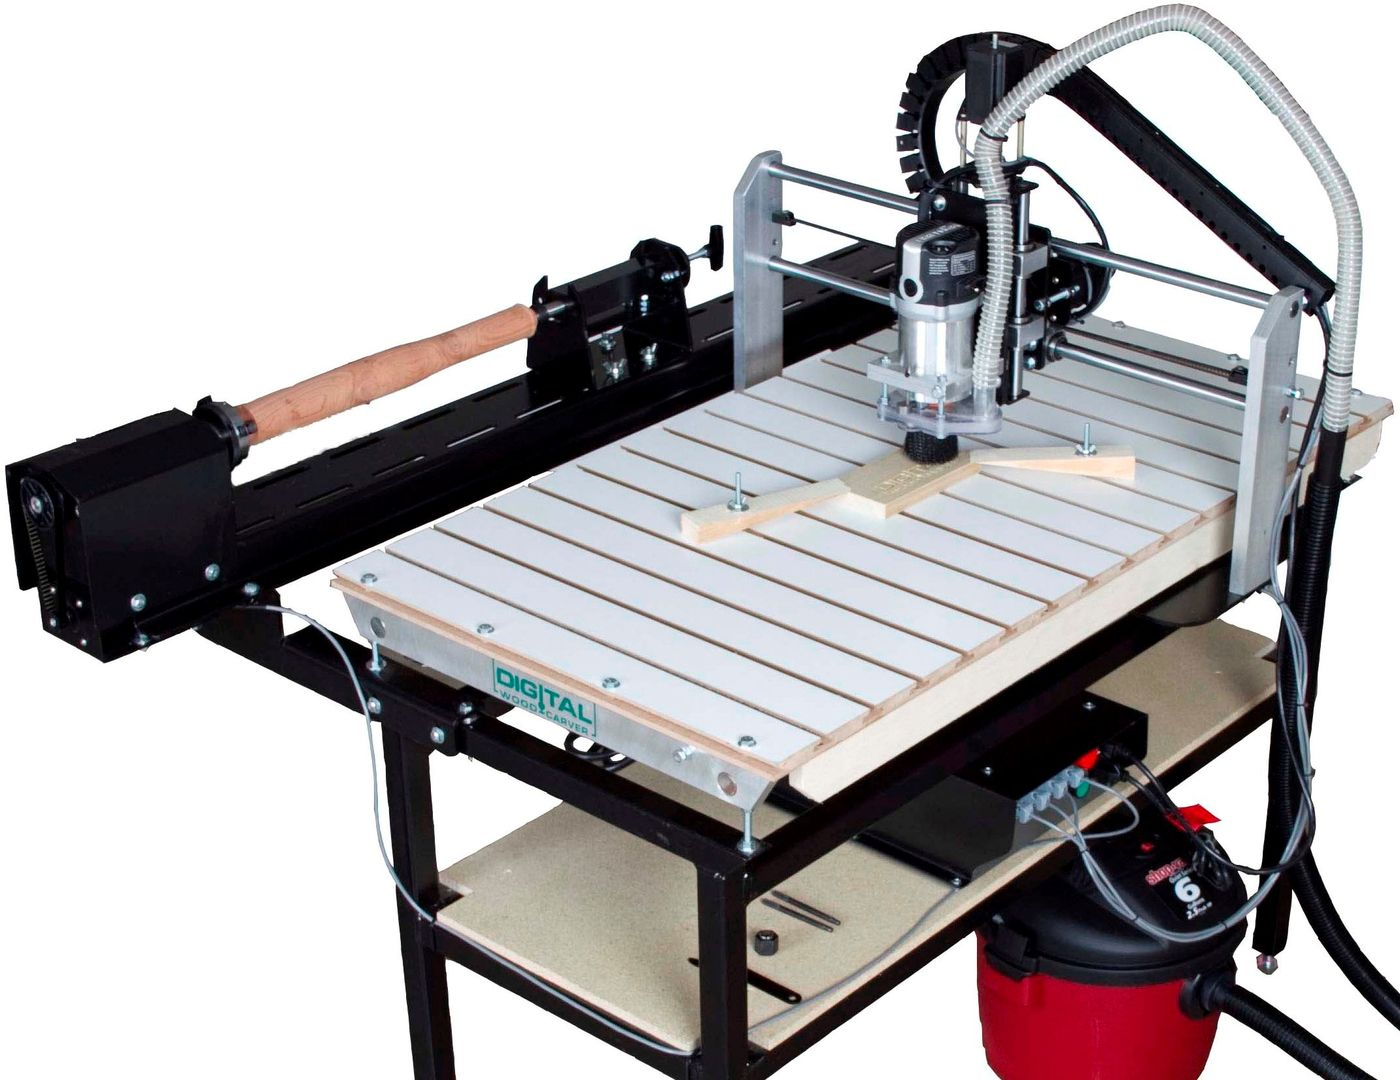 Digital Wood Carver Handcrafted Wood Products Hobbyist Small